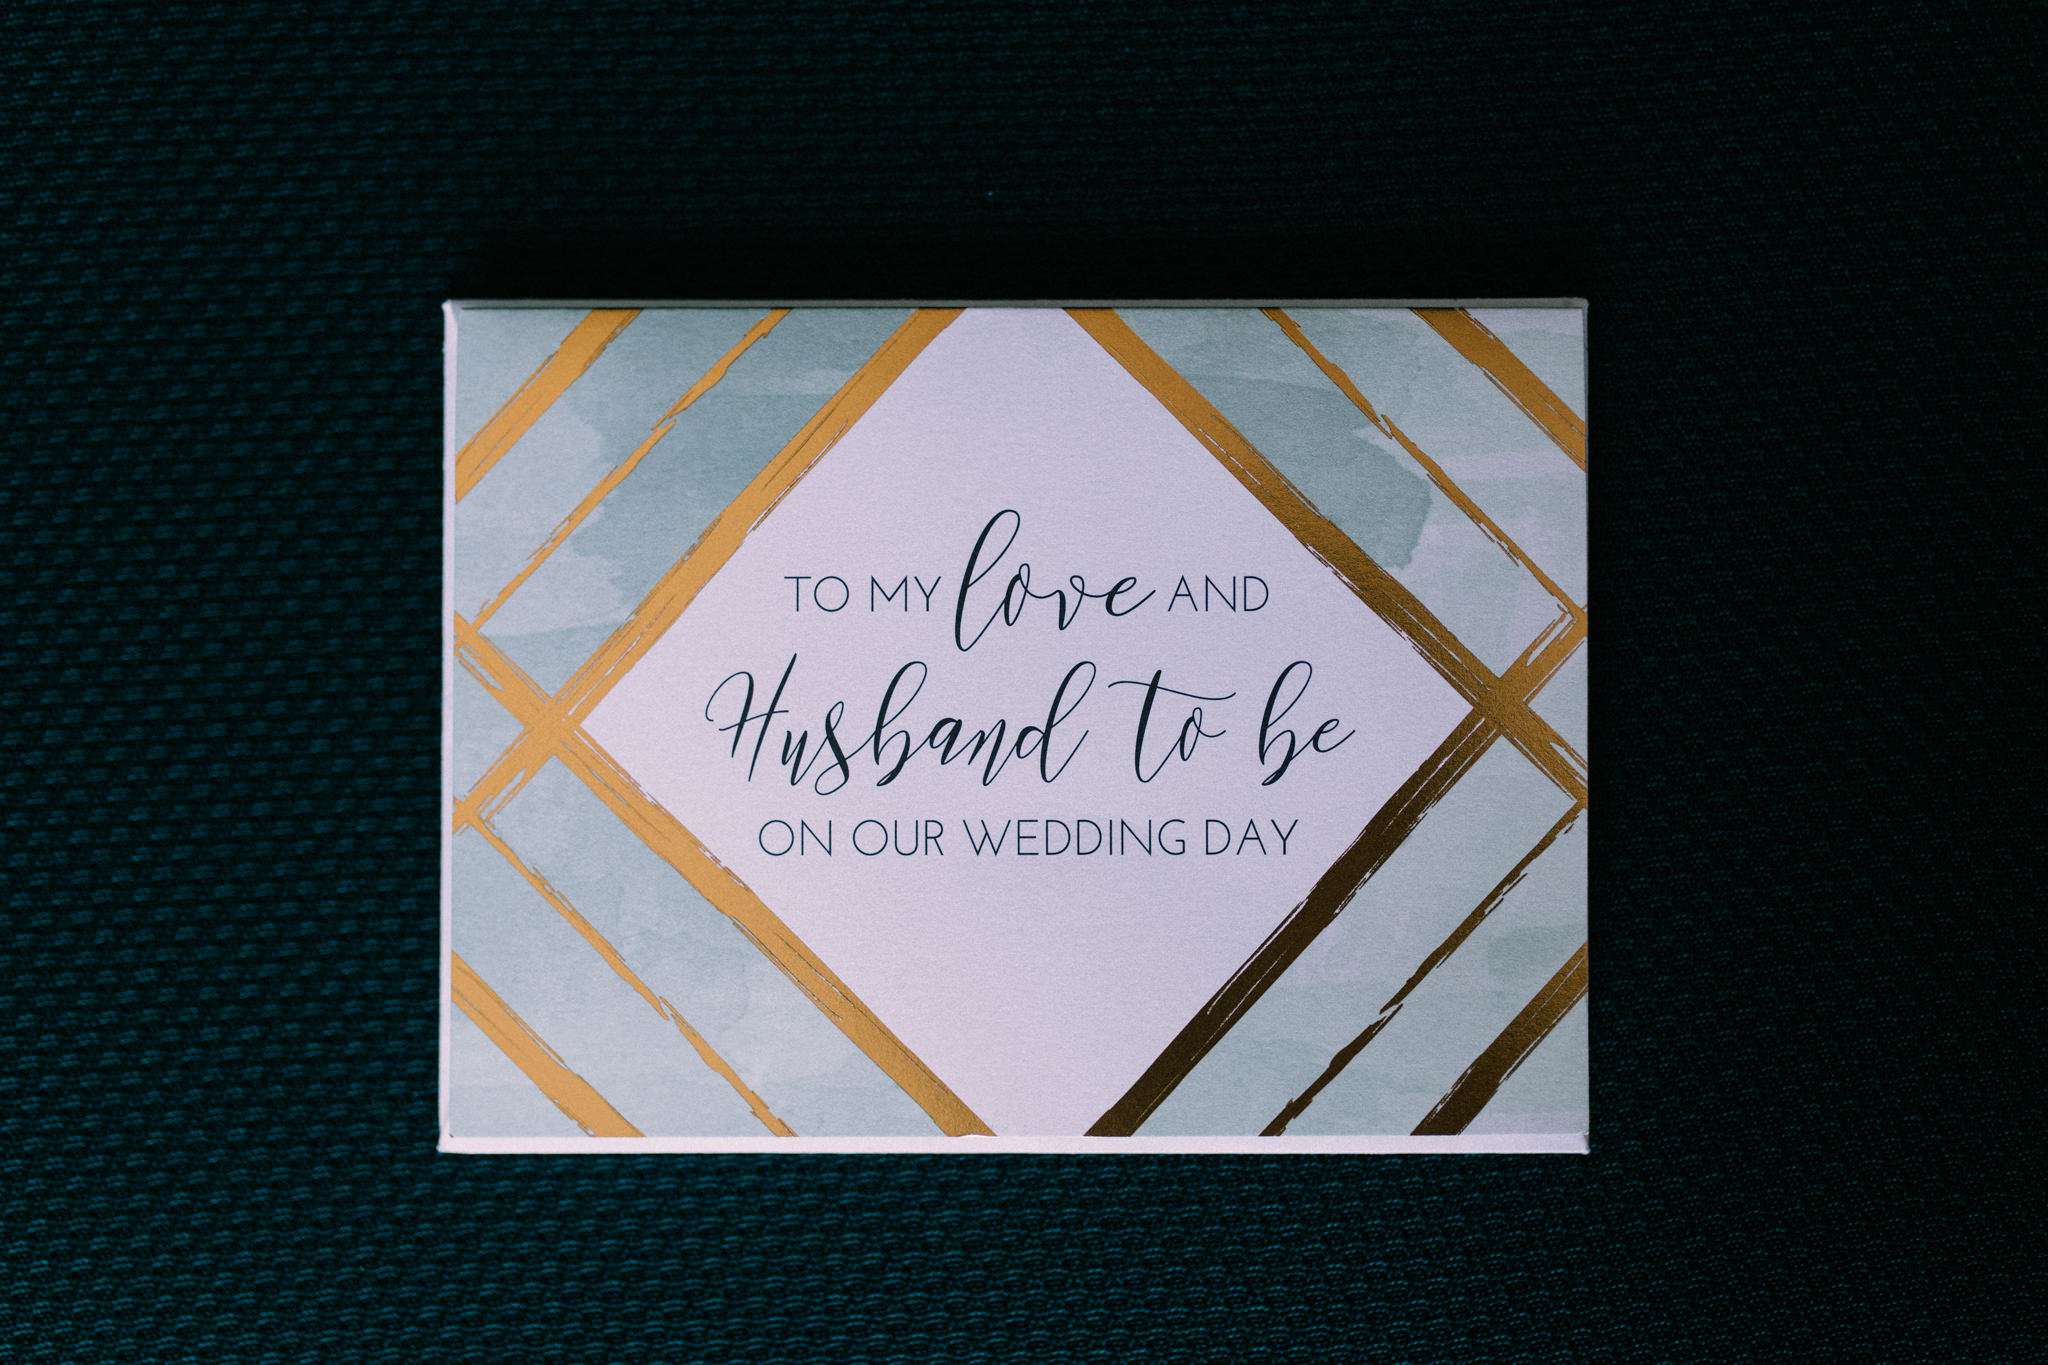 card from bride to husband on wedding day